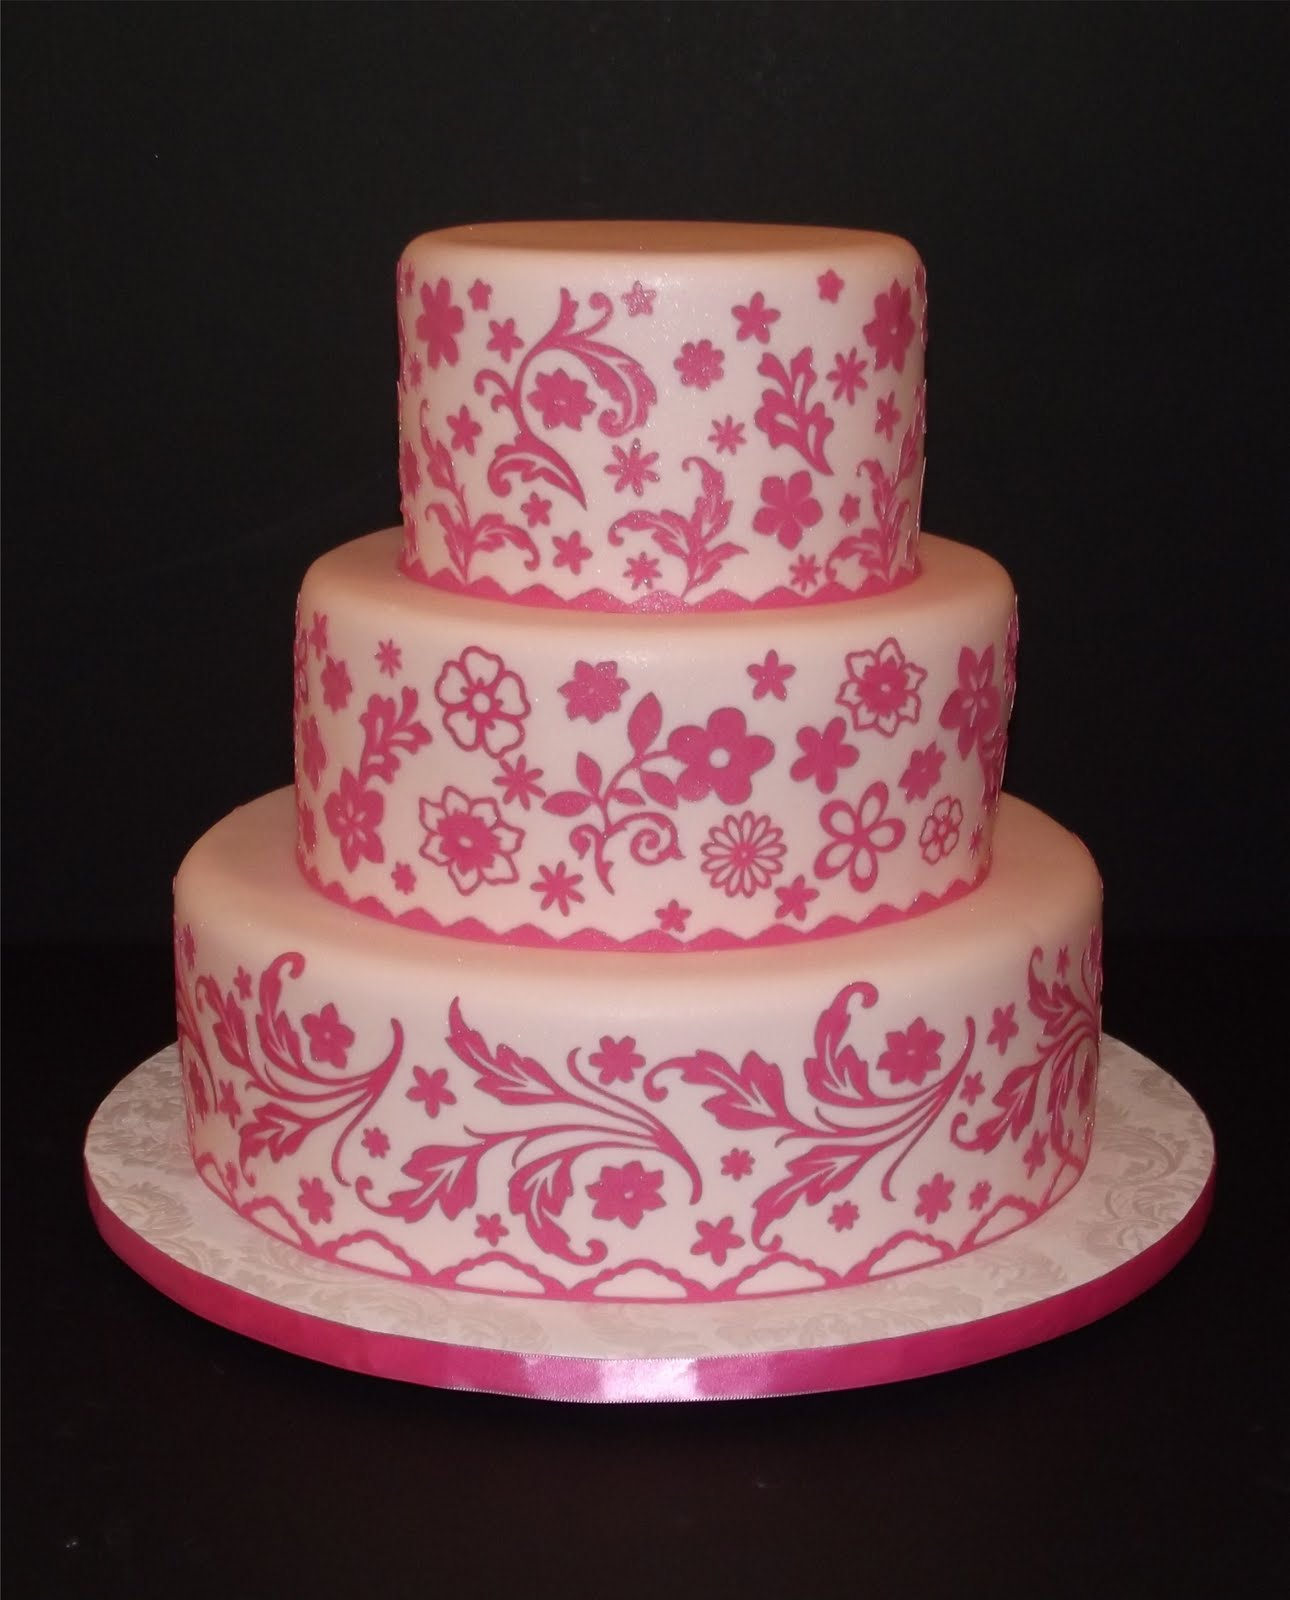 Cake Design With Icing : Creative Designs For Cakes: A Few New Cakes